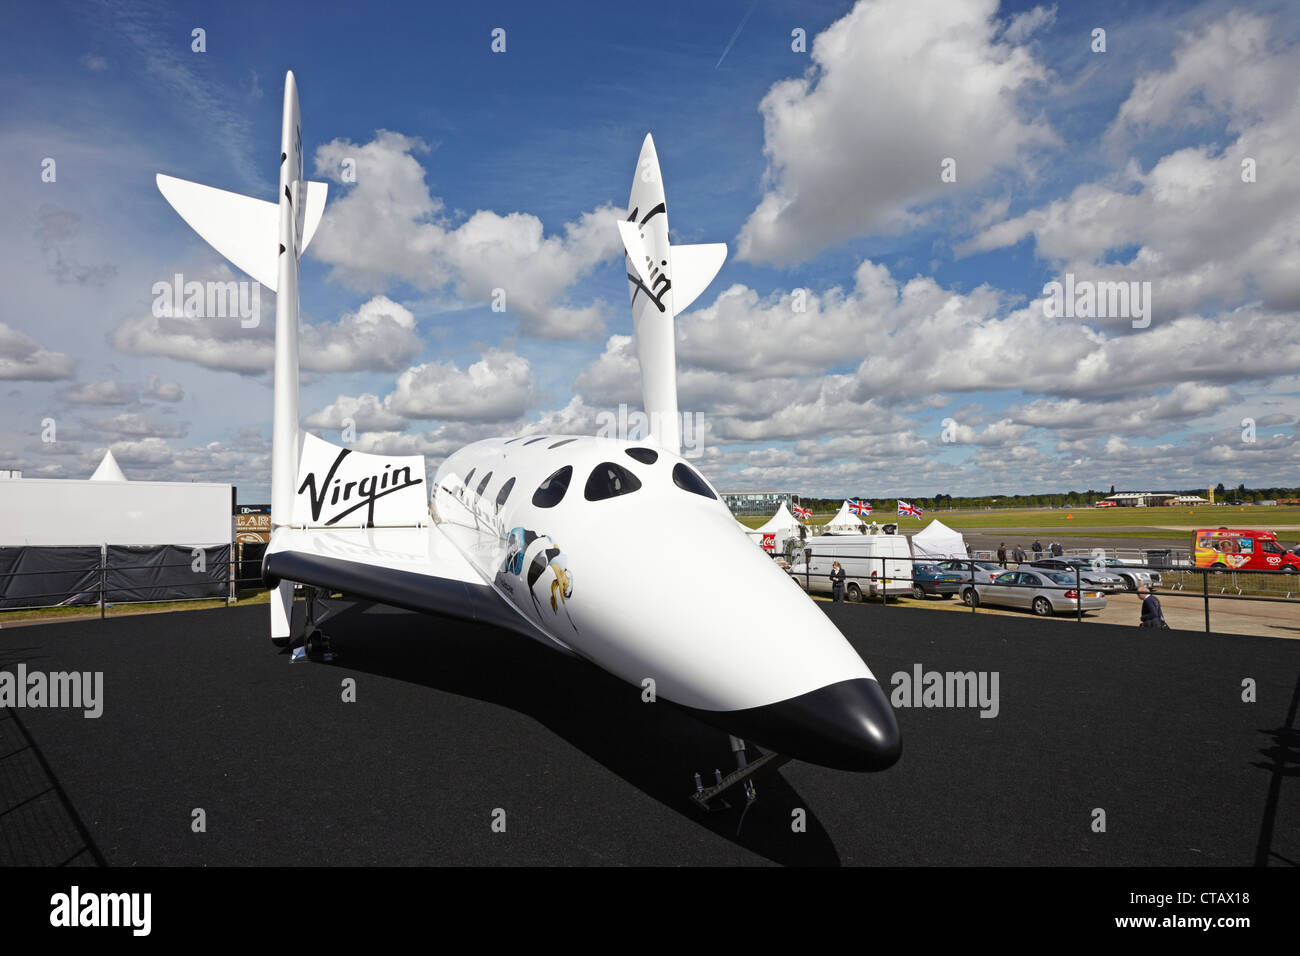 Farnborough International Airshow Virgin Galactic SpaceShipTwo Photo Stock